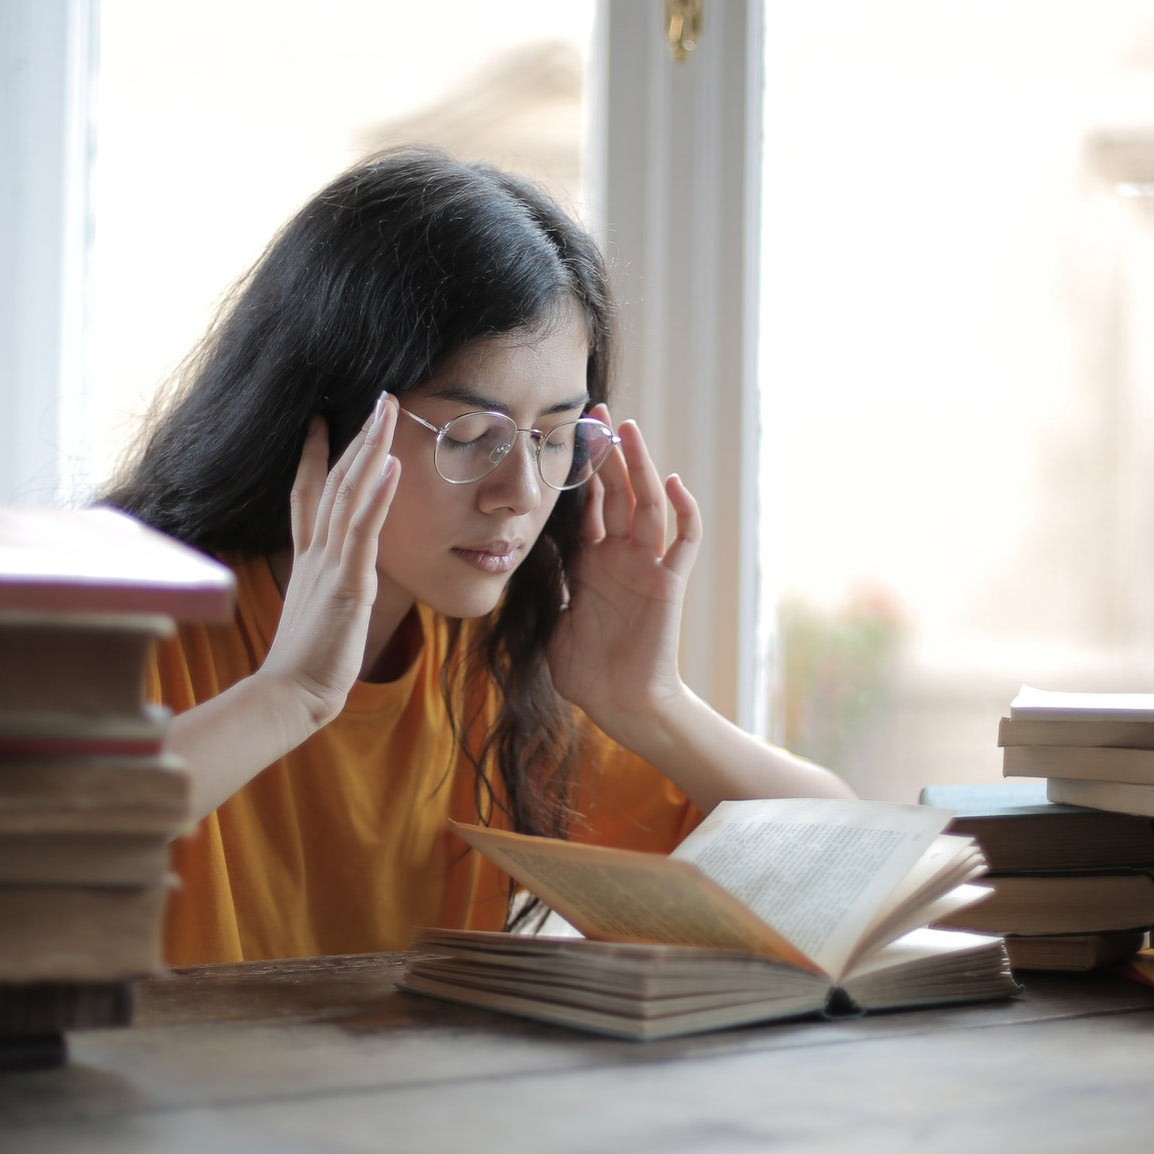 Does Dyslexia Come & Go? Tips for College Students with Literacy Difficulties